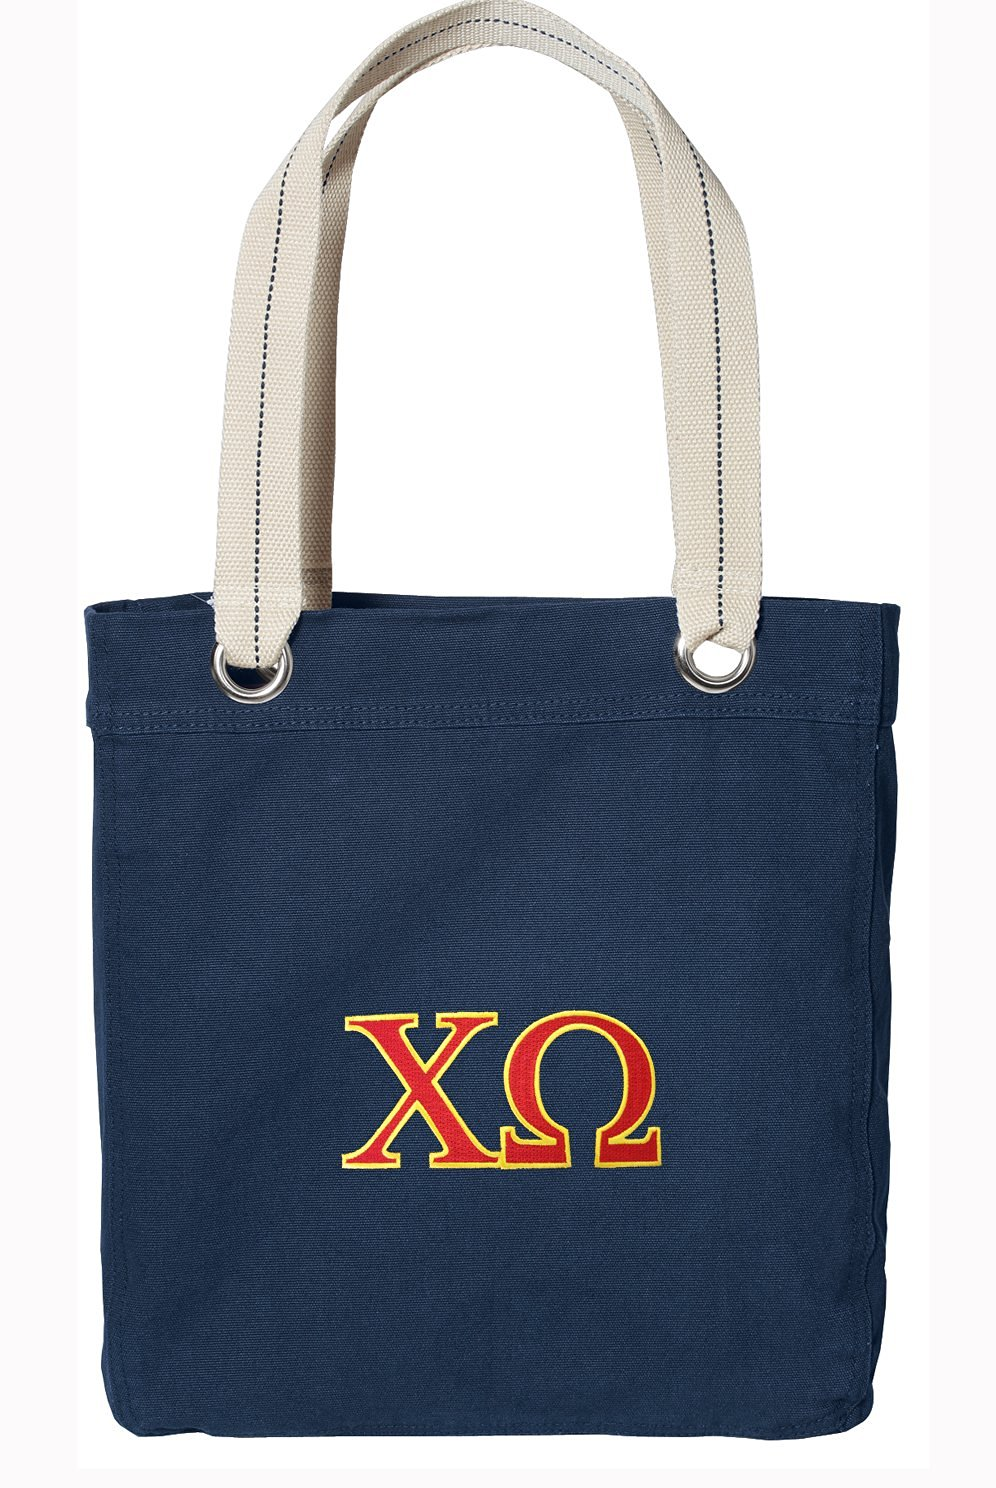 Chi Omega Tote Bag RICH Dye Washed Navy COTTON CANVAS